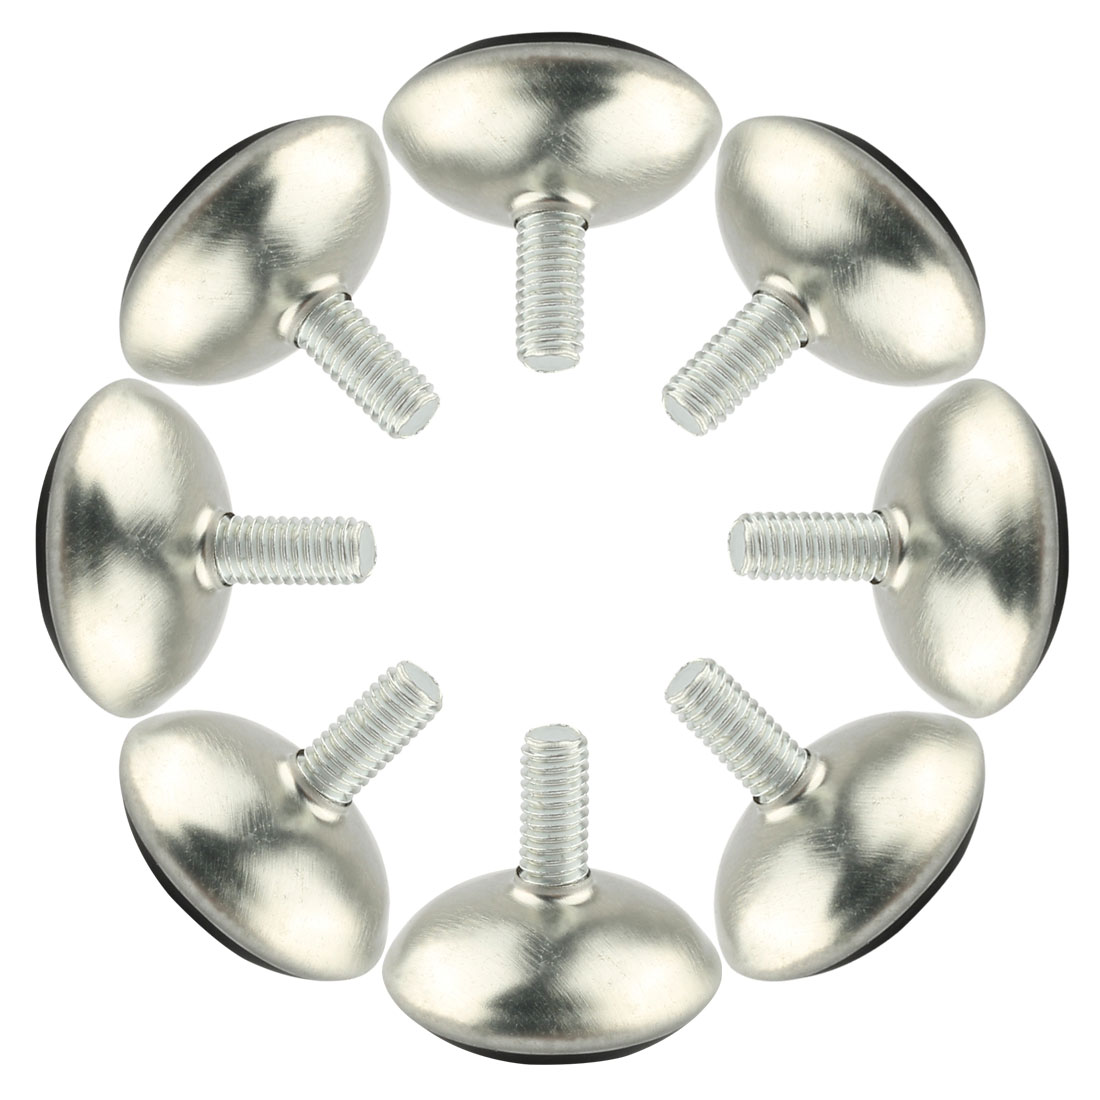 8 Pcs Adjustable Screw On Type Furniture Glide Leveling Feet M6 x 12mm